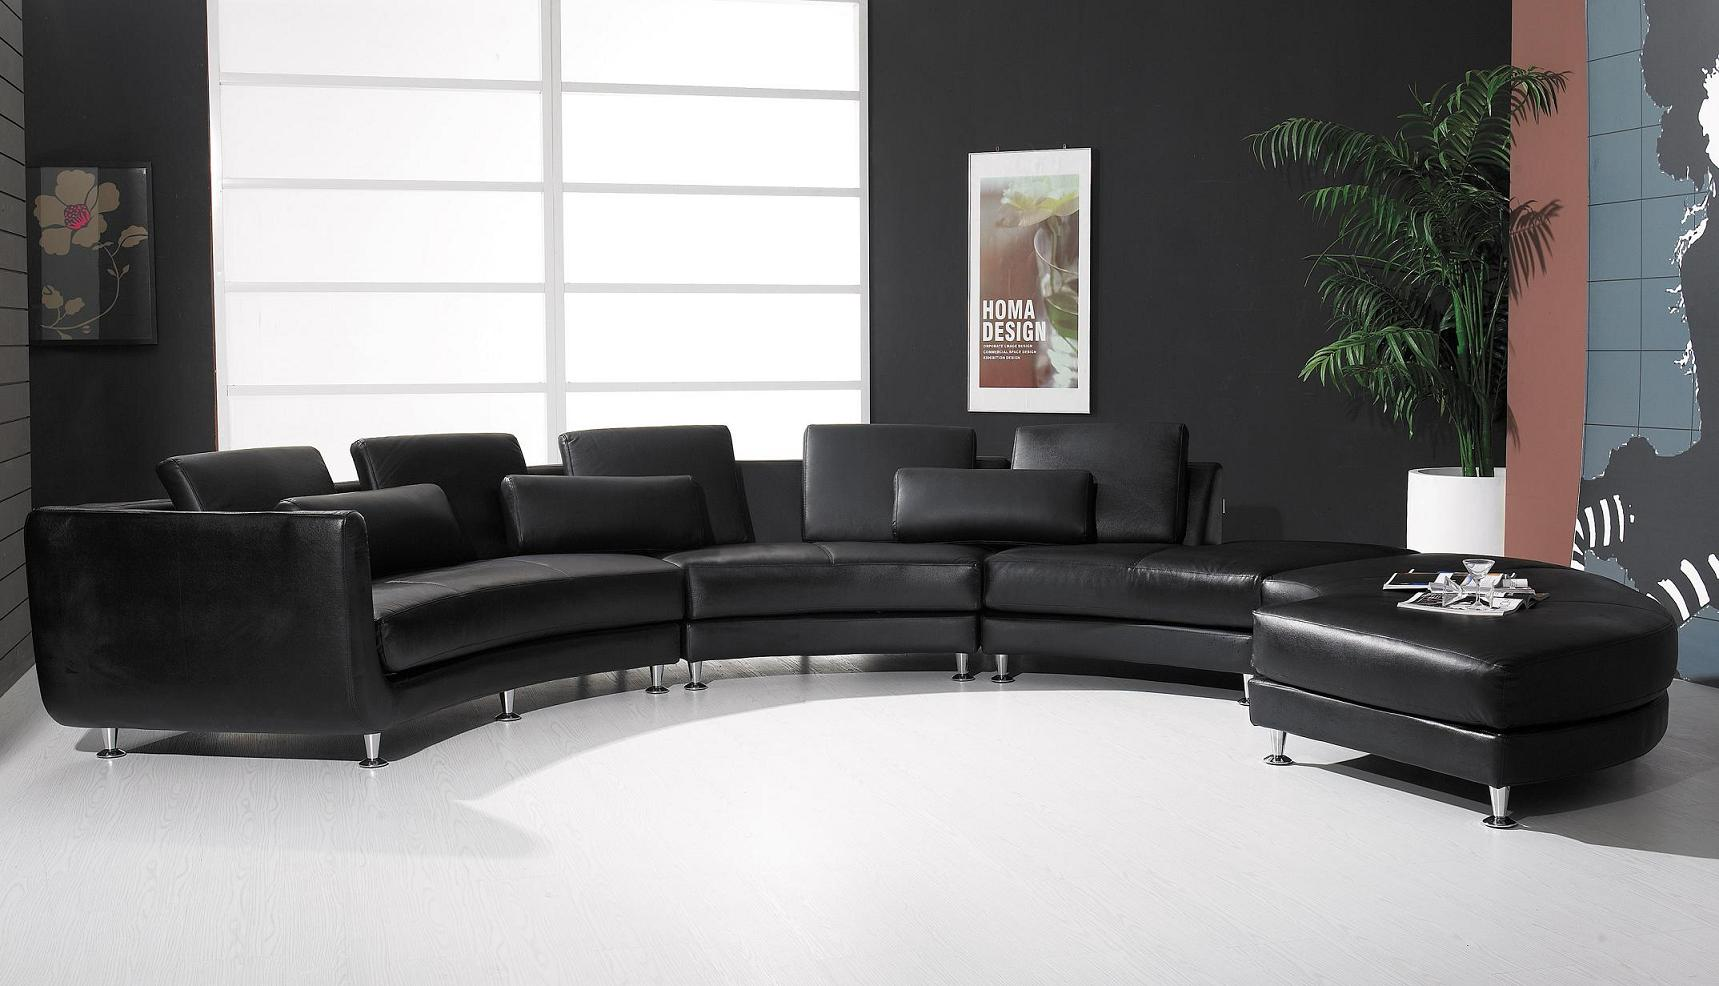 A94 White Leather Sectional Sofa Set Black Design Co